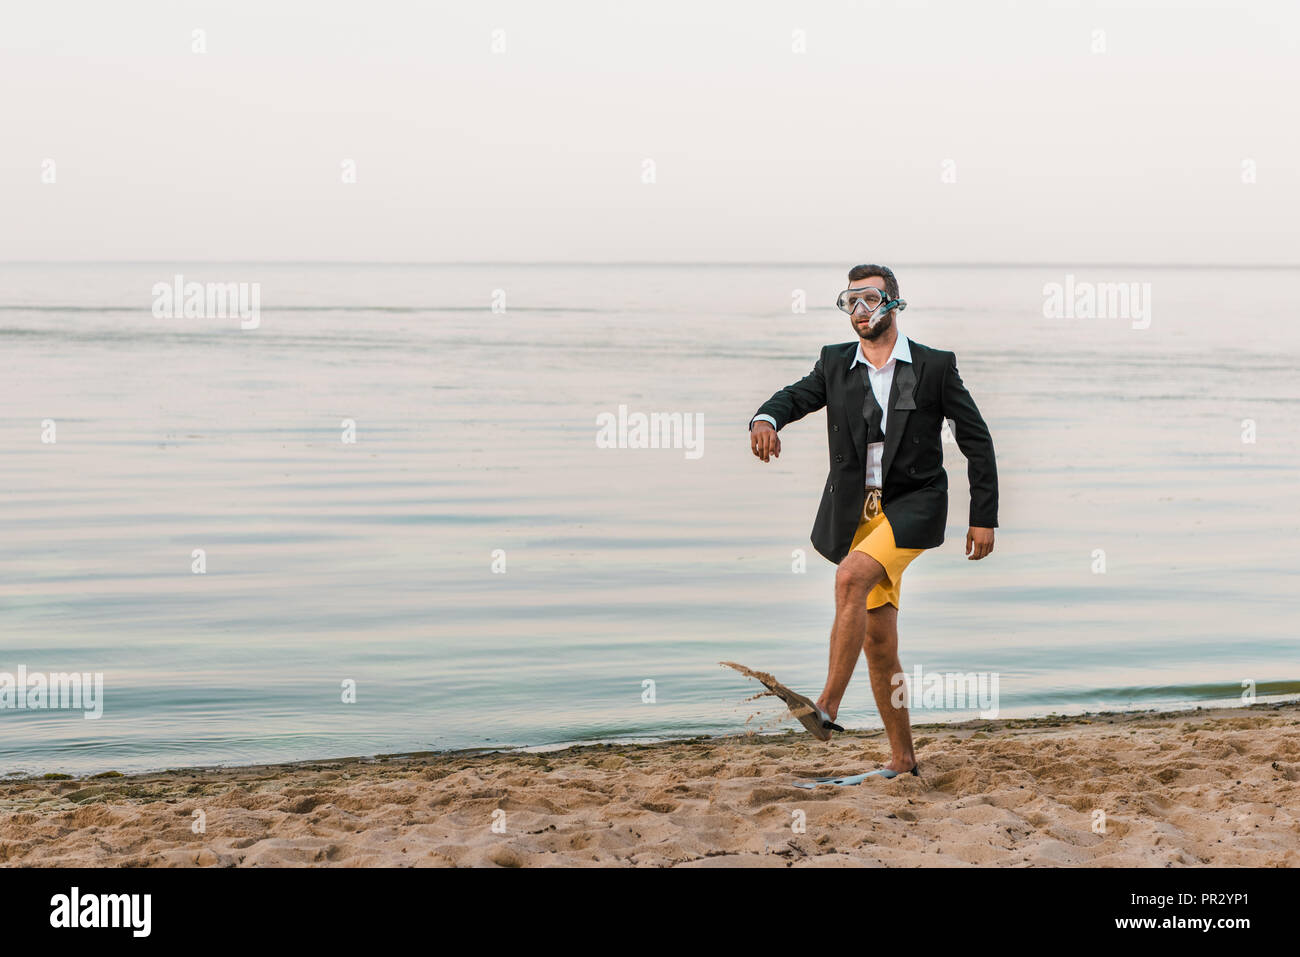 man in black jacket and shorts walking with swimming mask and flippers on sea shore - Stock Image